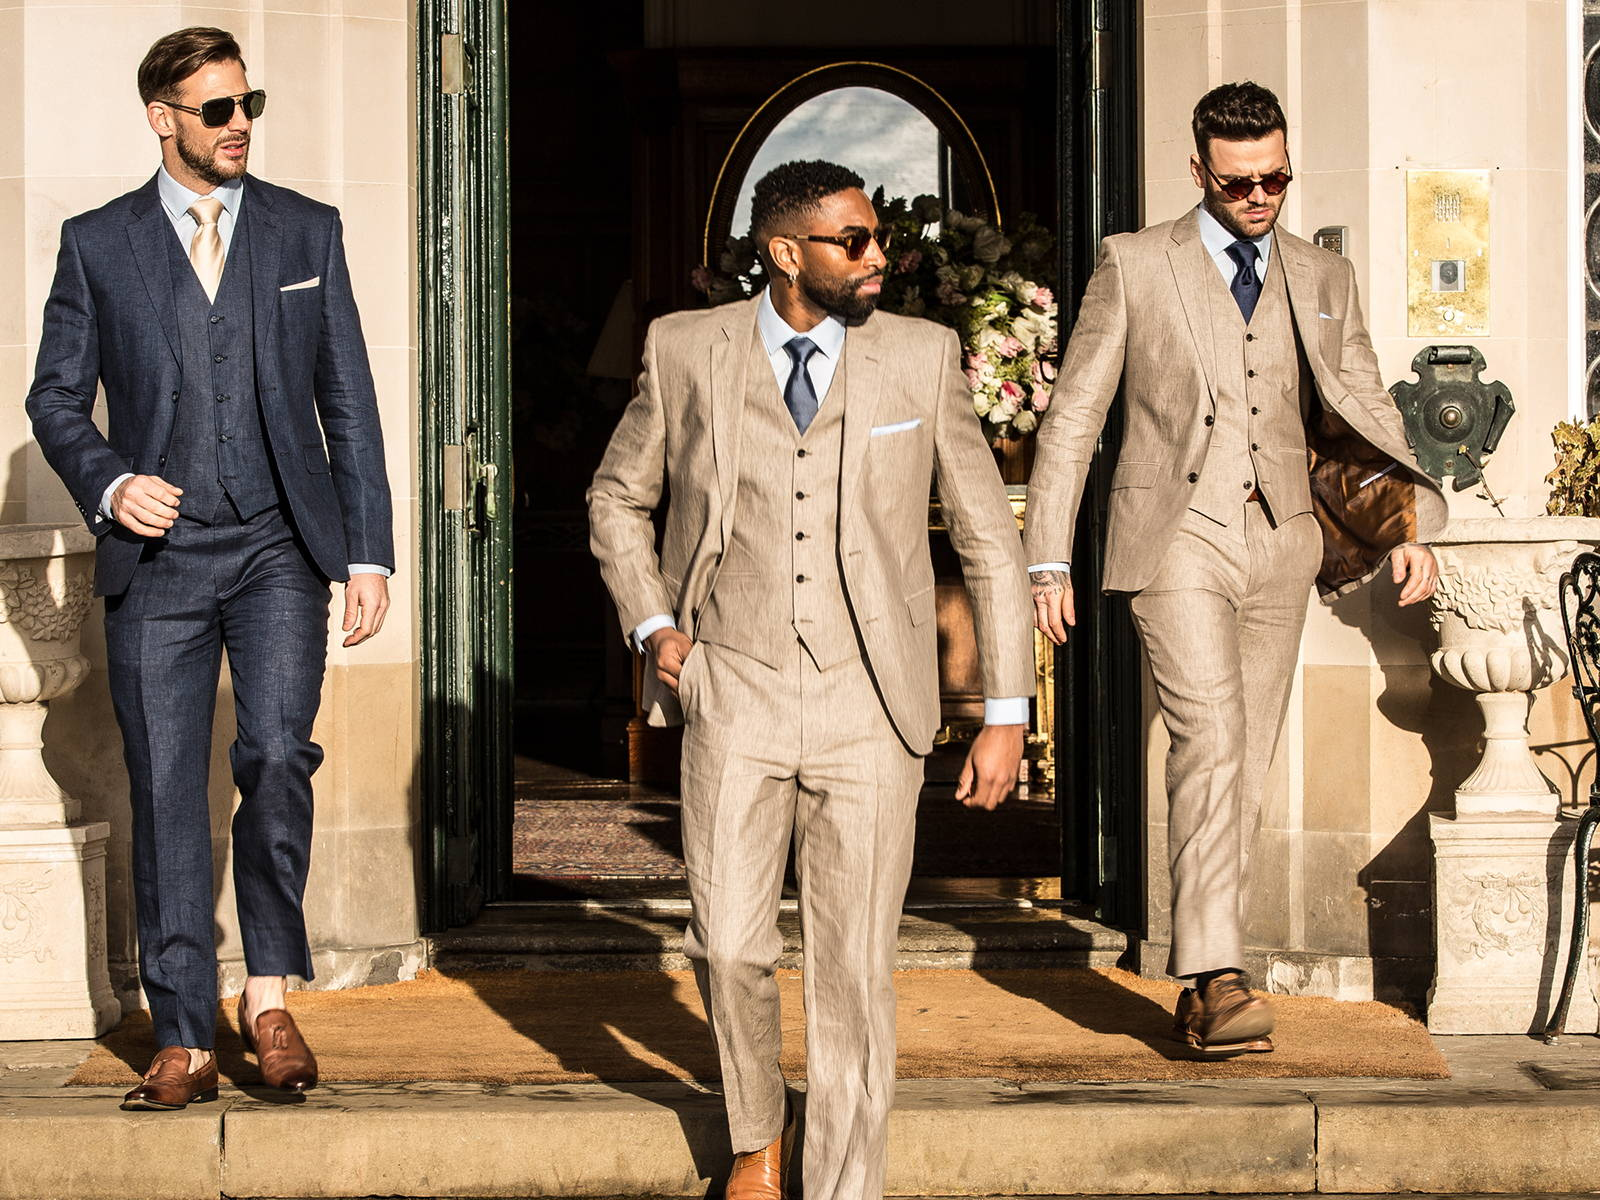 three dudes in suits